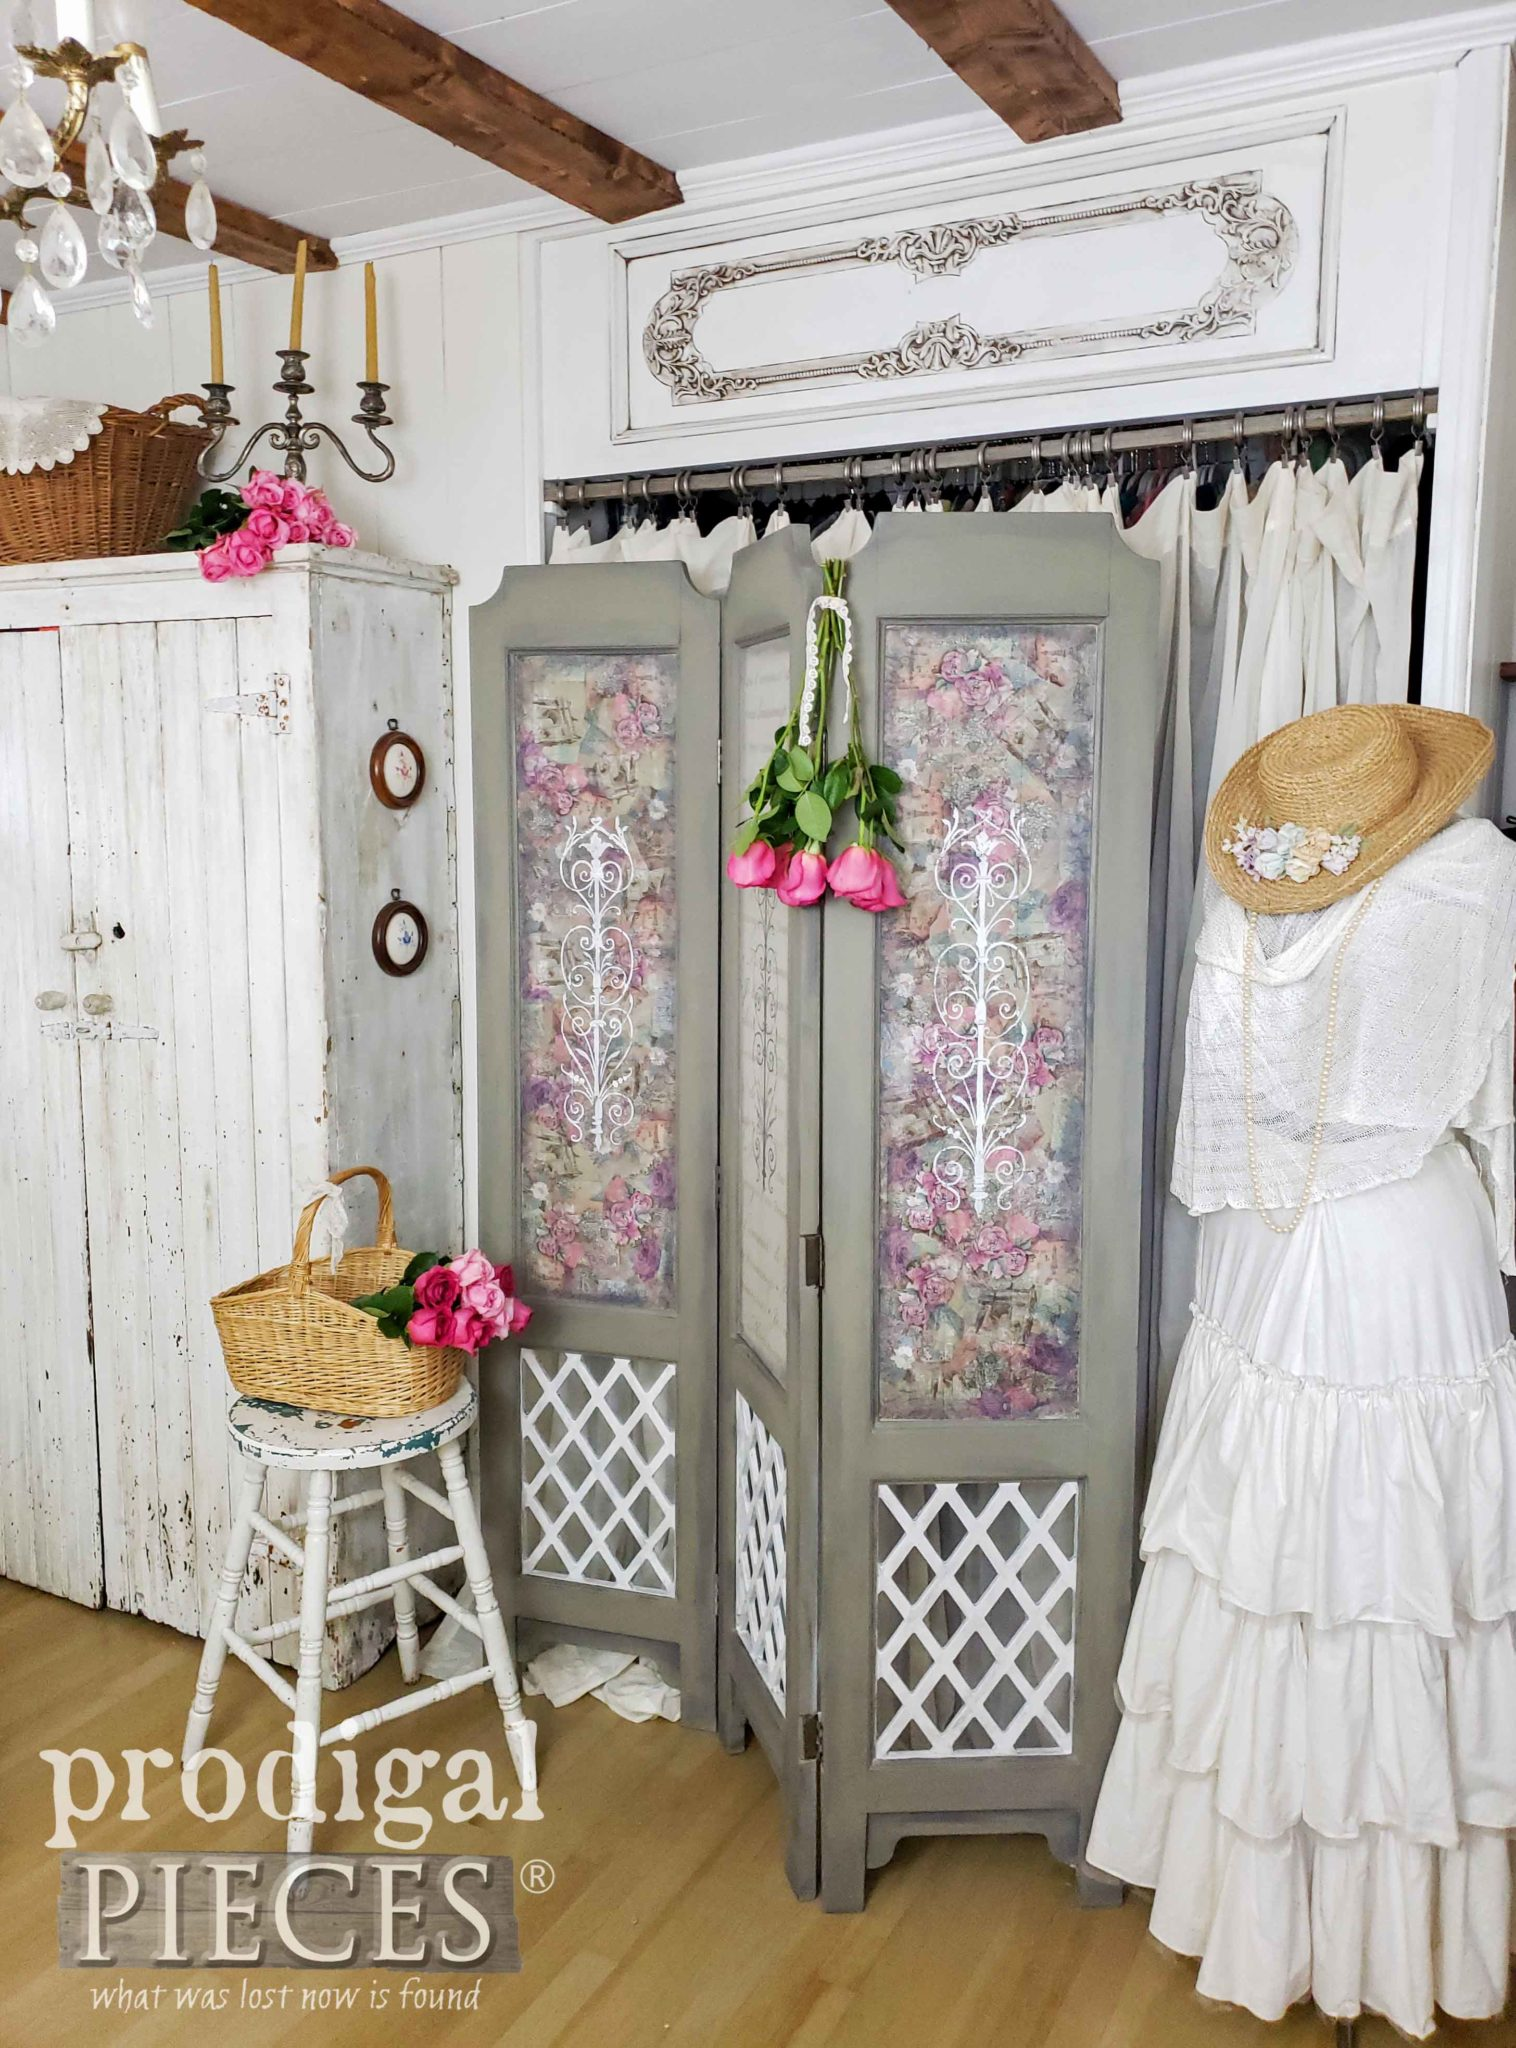 Romantic Chic Bedroom with Roses and French Style Folding Screen by Larissa of Prodigal Pieces | prodigalpieces.com